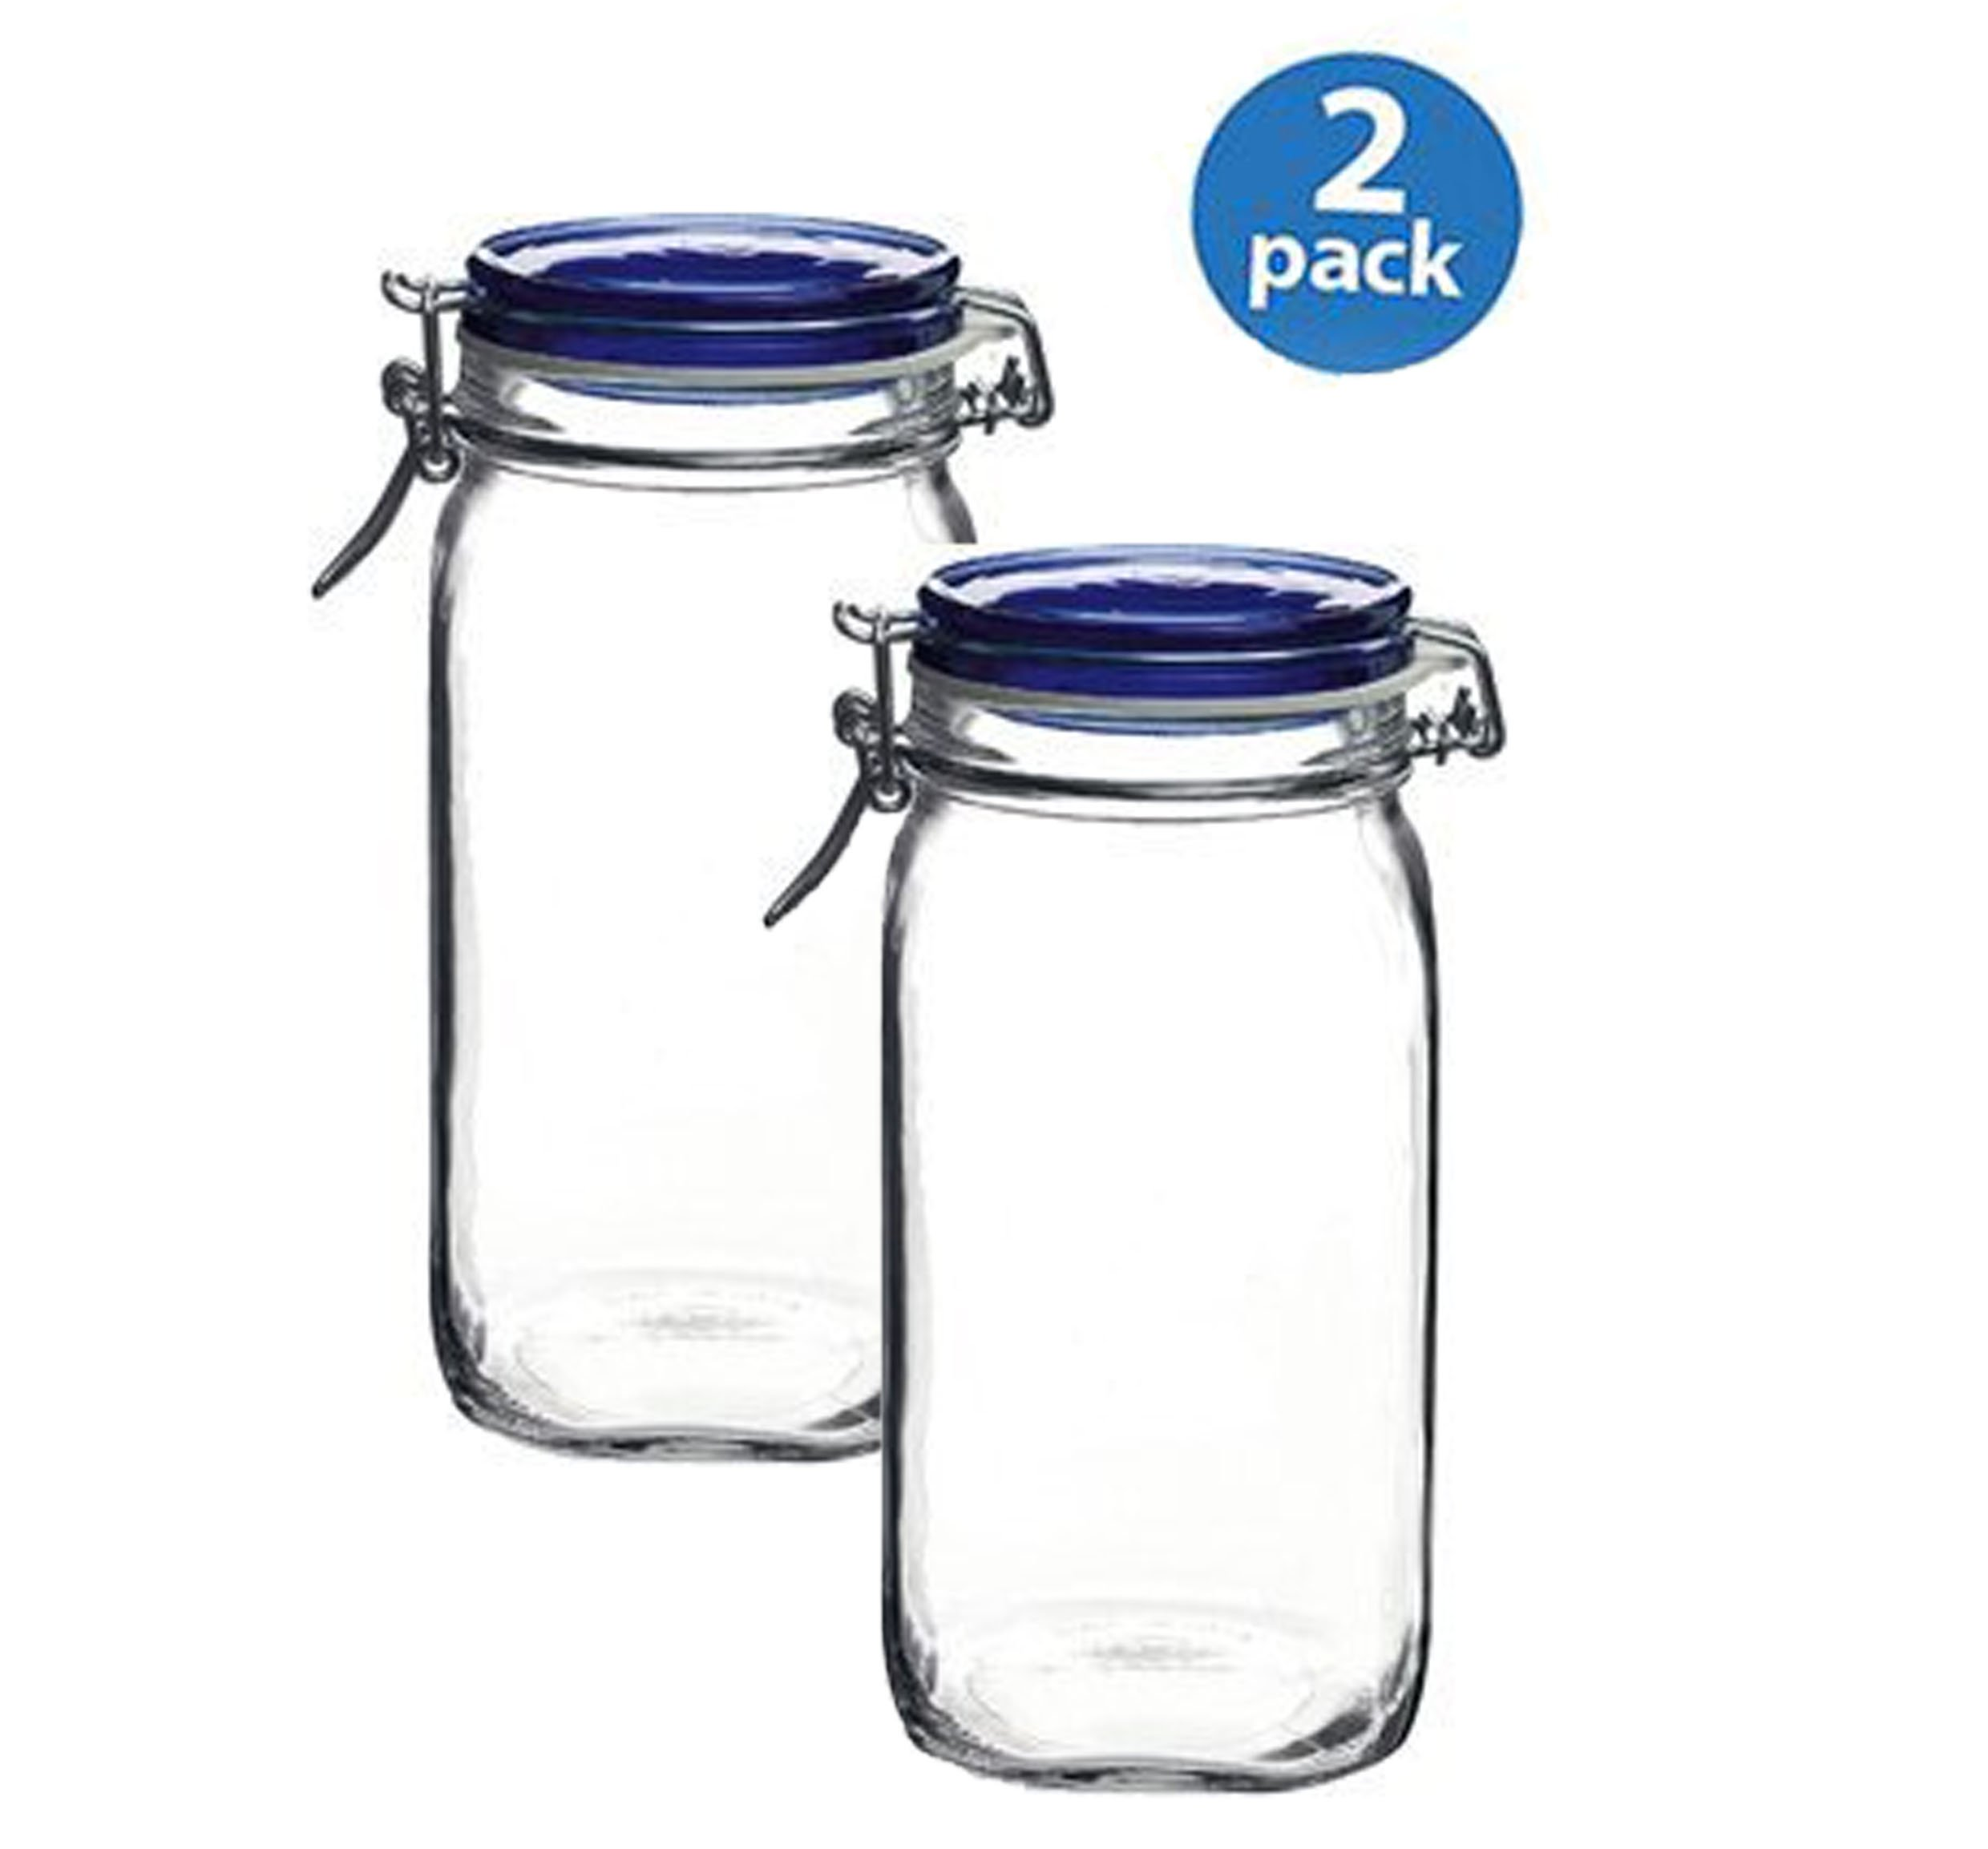 Bormioli Rocco Fido Square Jar with Blue Lid, 50-3/4-Ounce, 2-pack